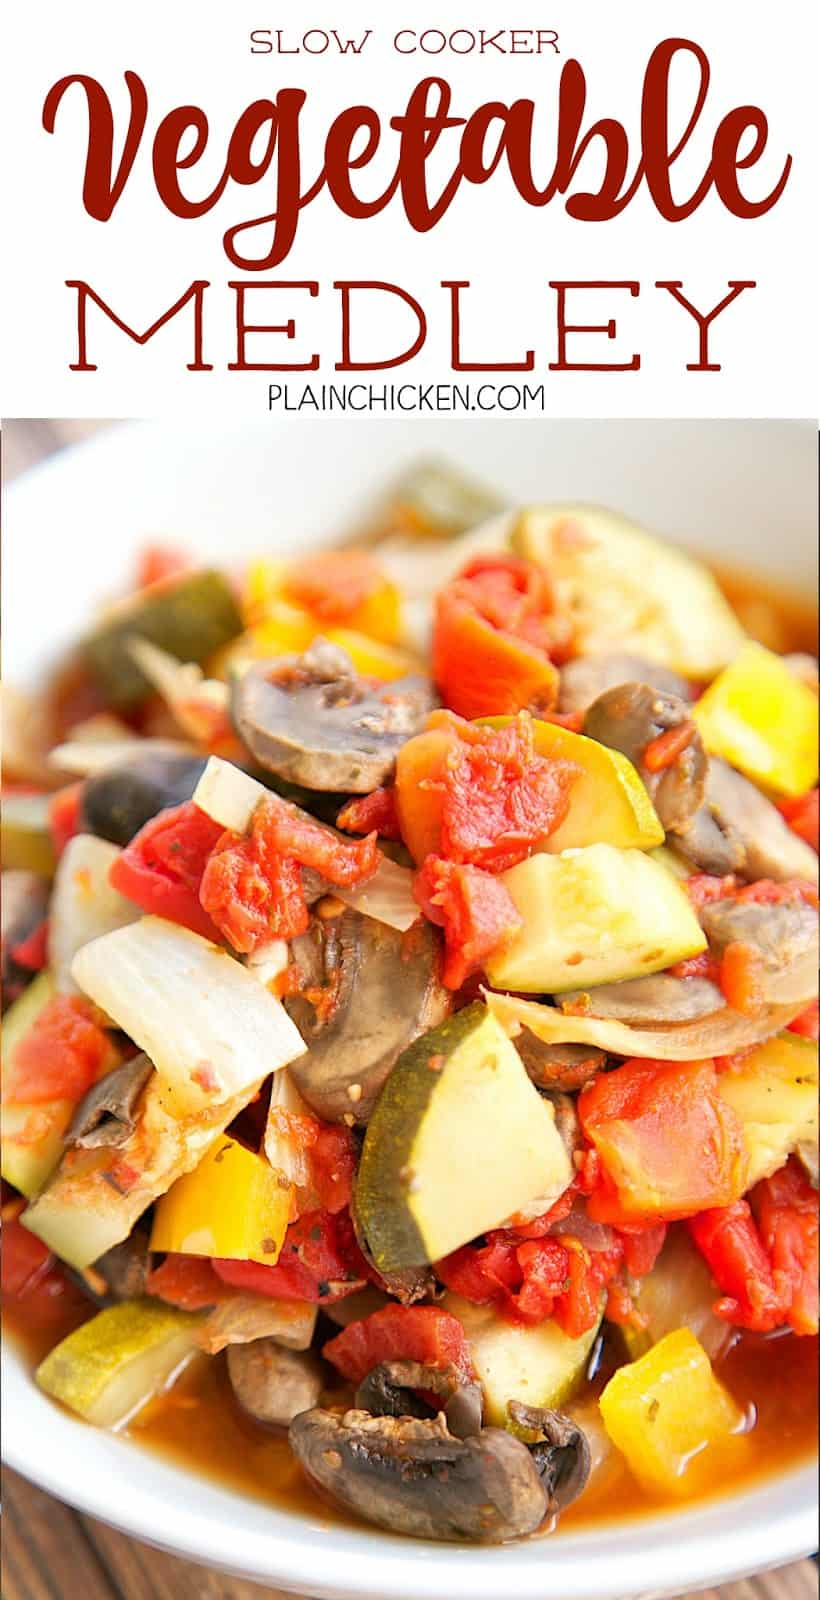 Slow Cooker Vegetable Medley - seriously delicious!! Onion, bell pepper, zucchini, tomatoes, mushrooms, garlic, oregano and pepper. Slow cook all day. Great as a side dish or over pasta!